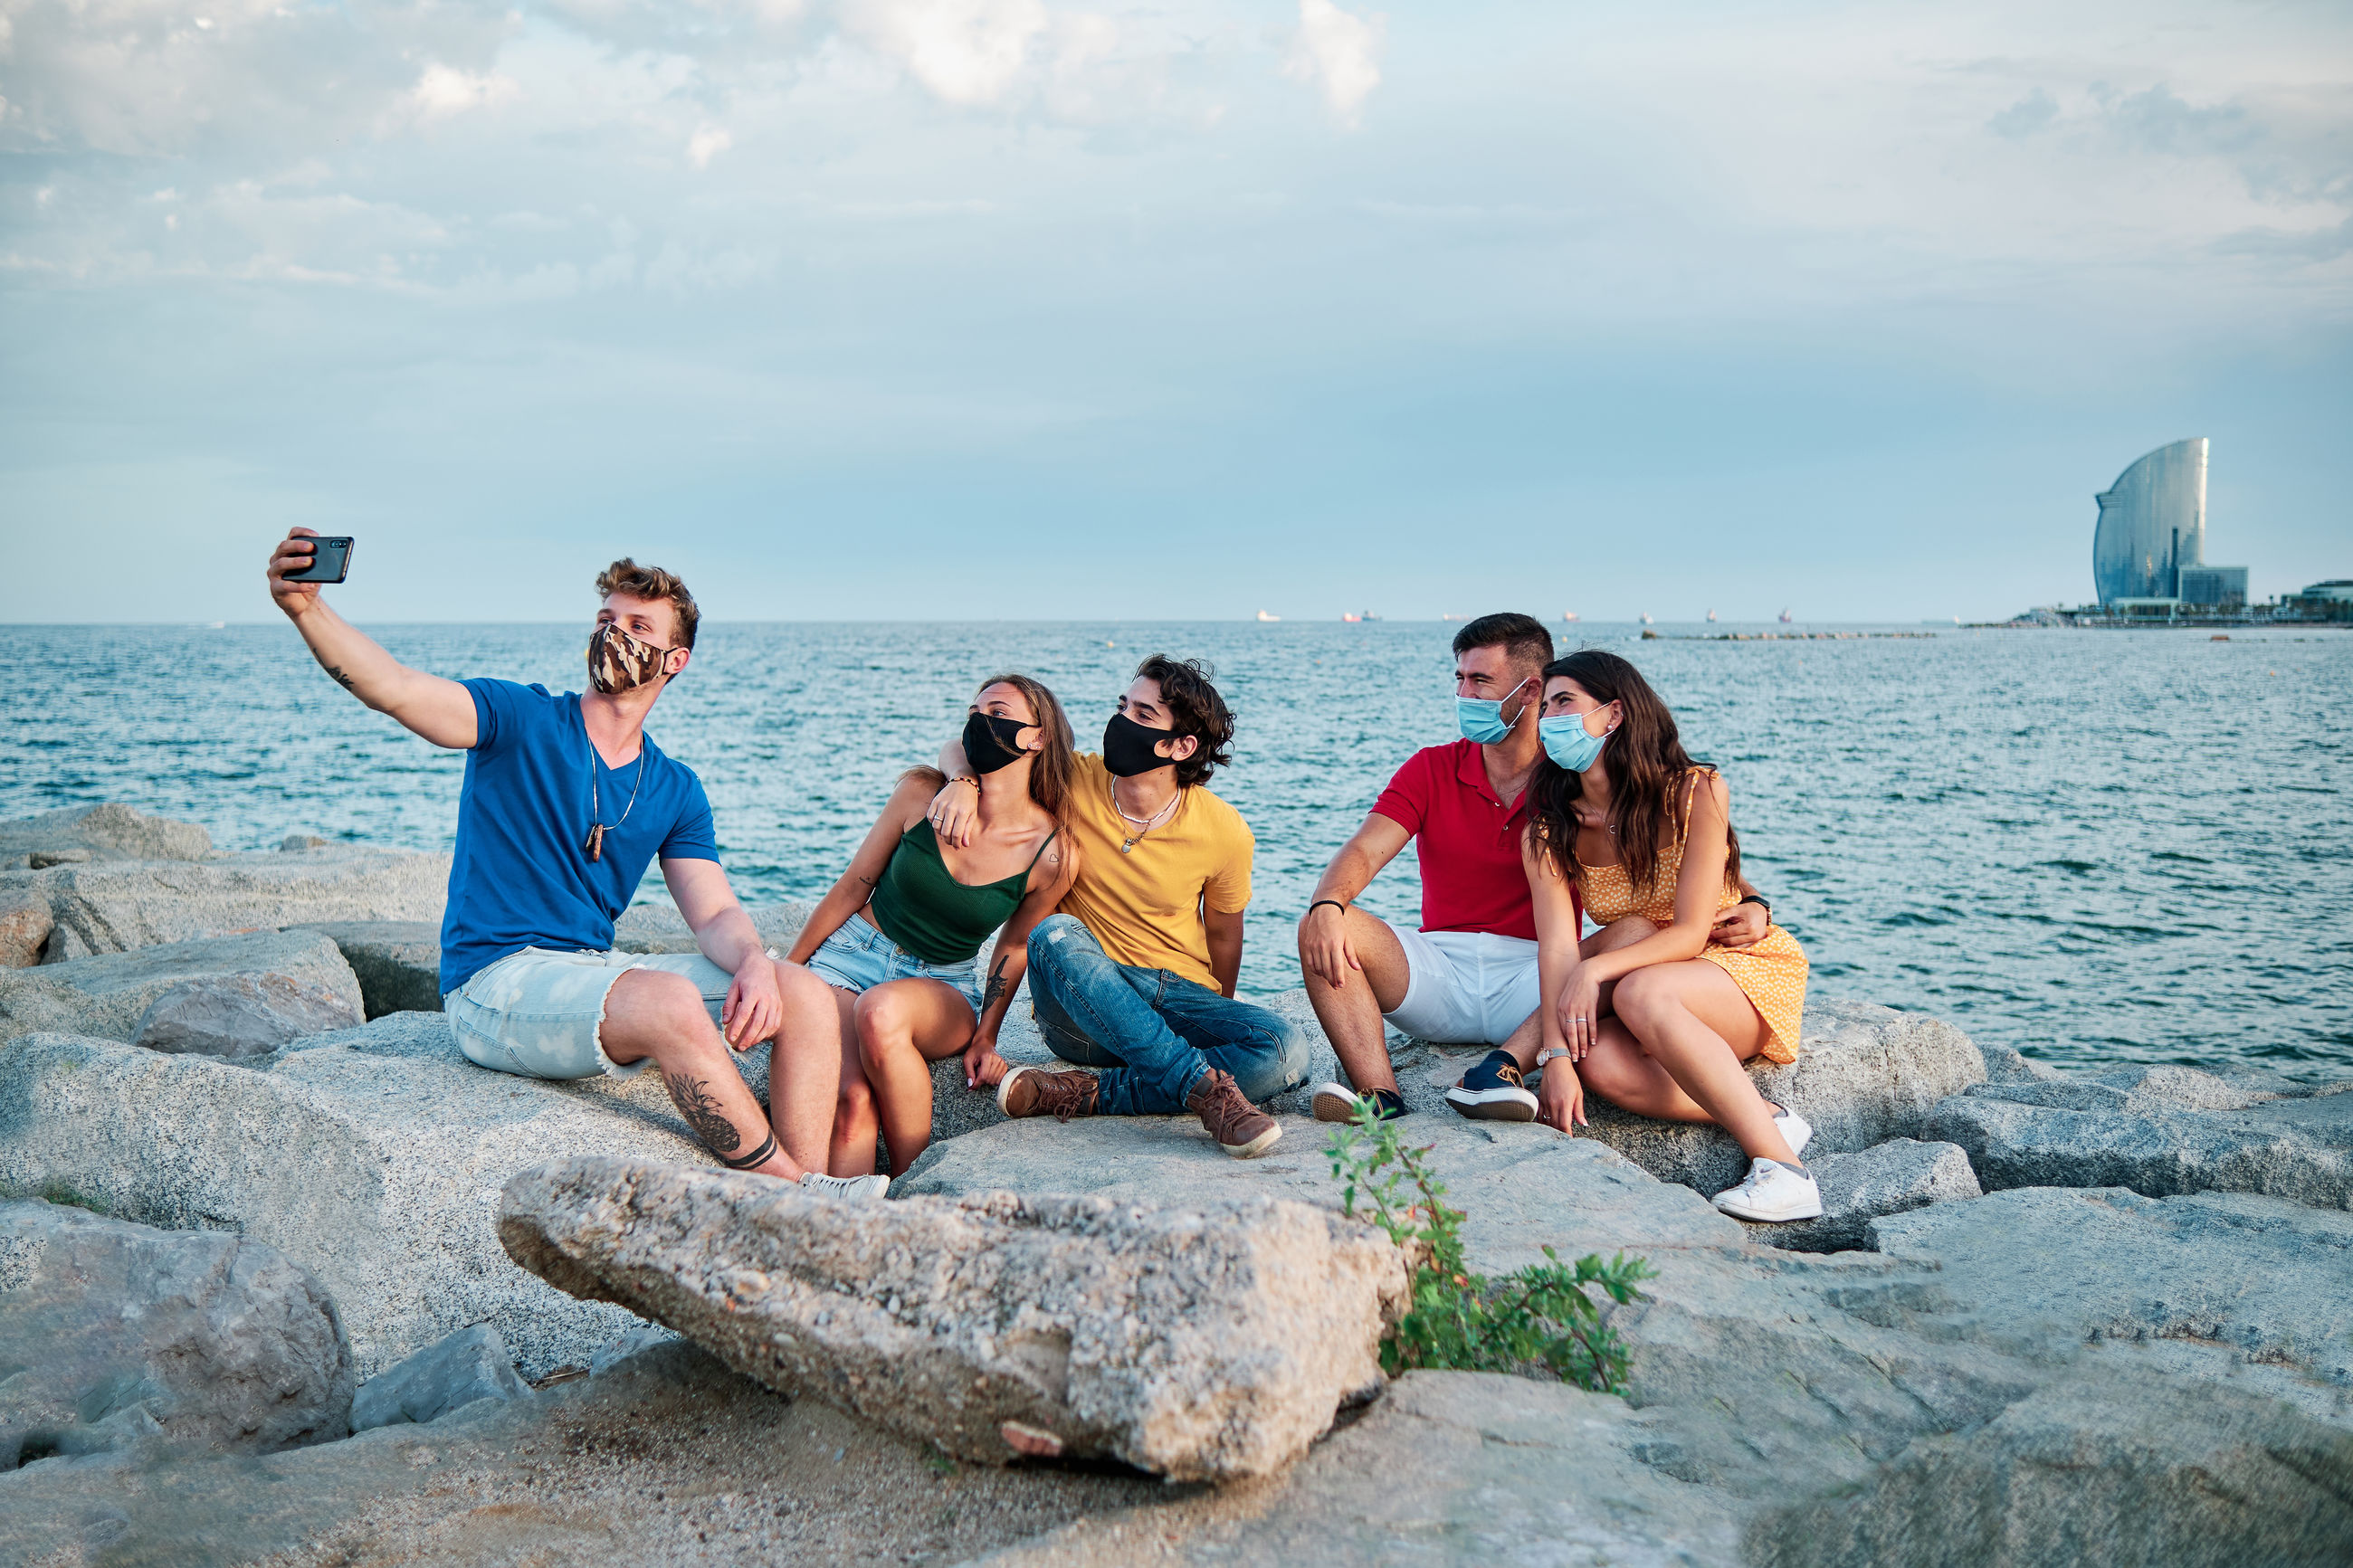 PEOPLE SITTING ON ROCK AGAINST SEA